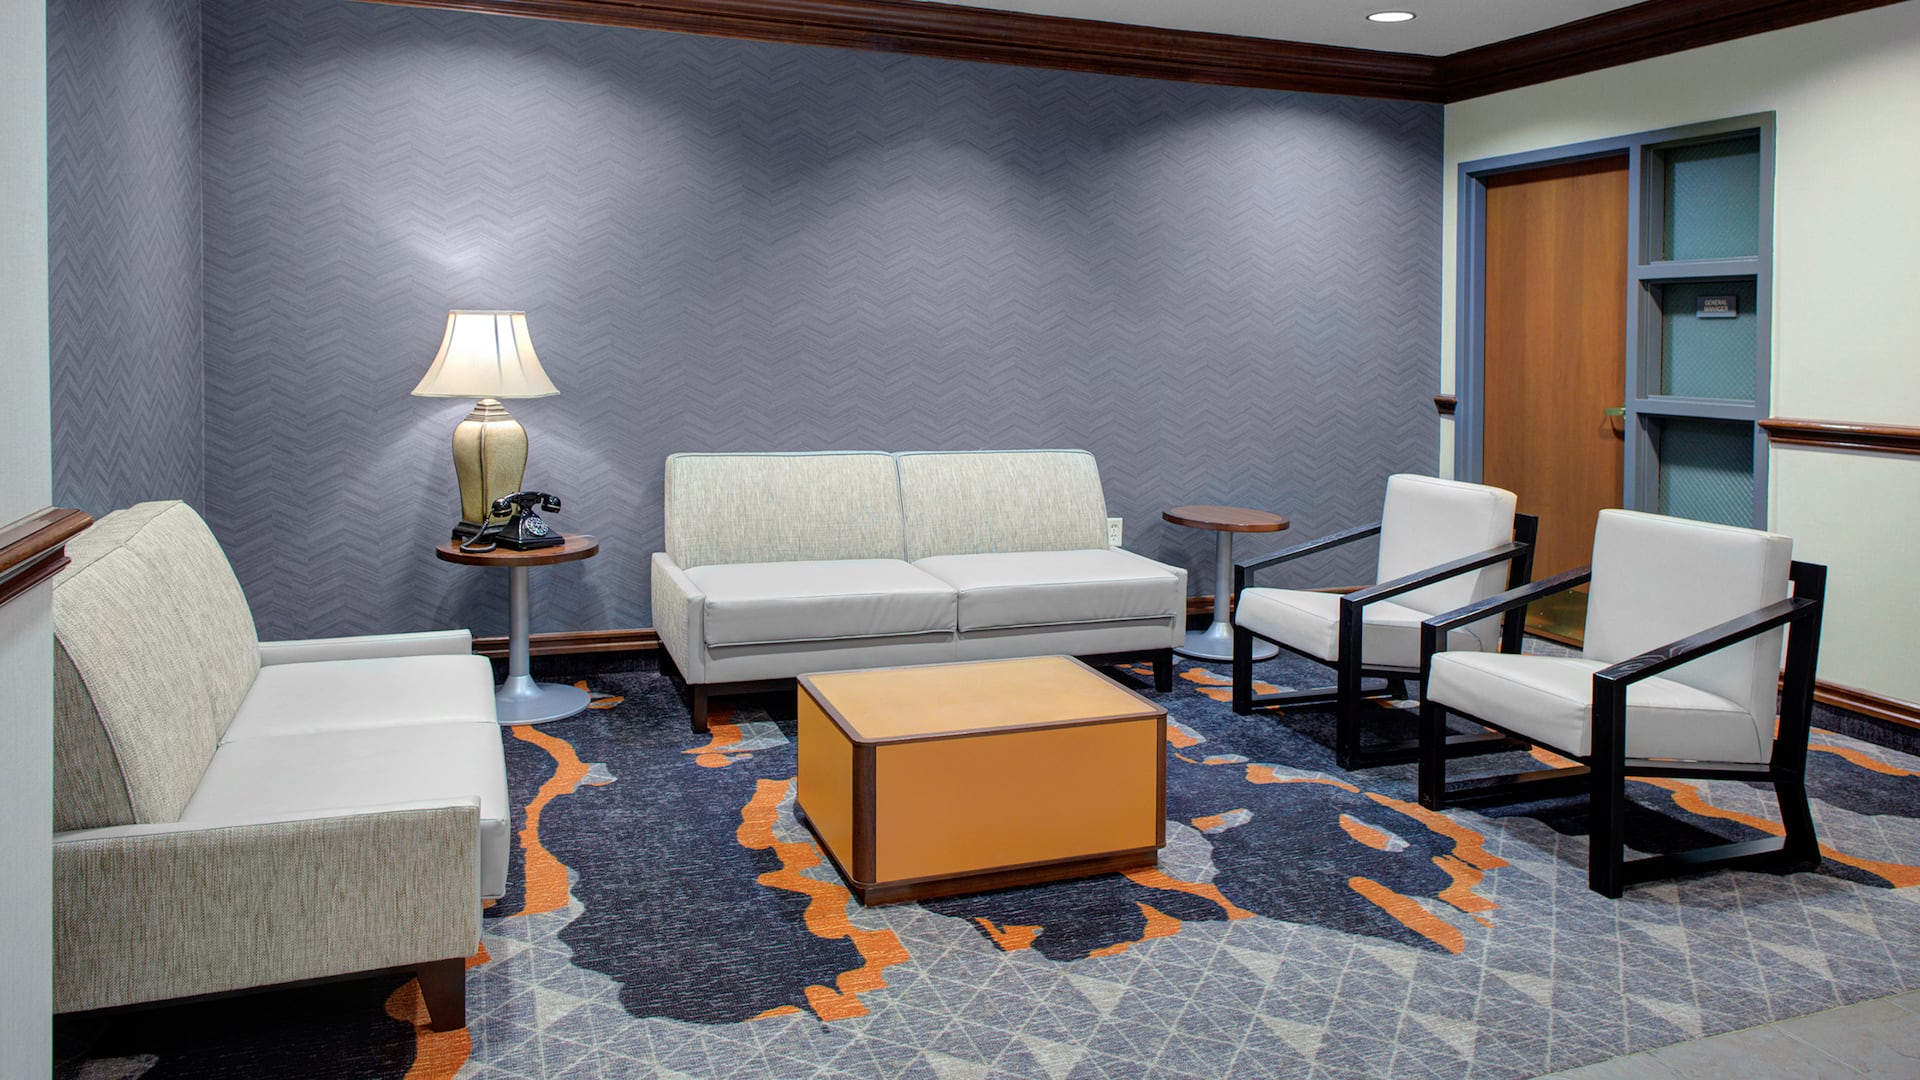 Hyatt House Parsippany East Lobby